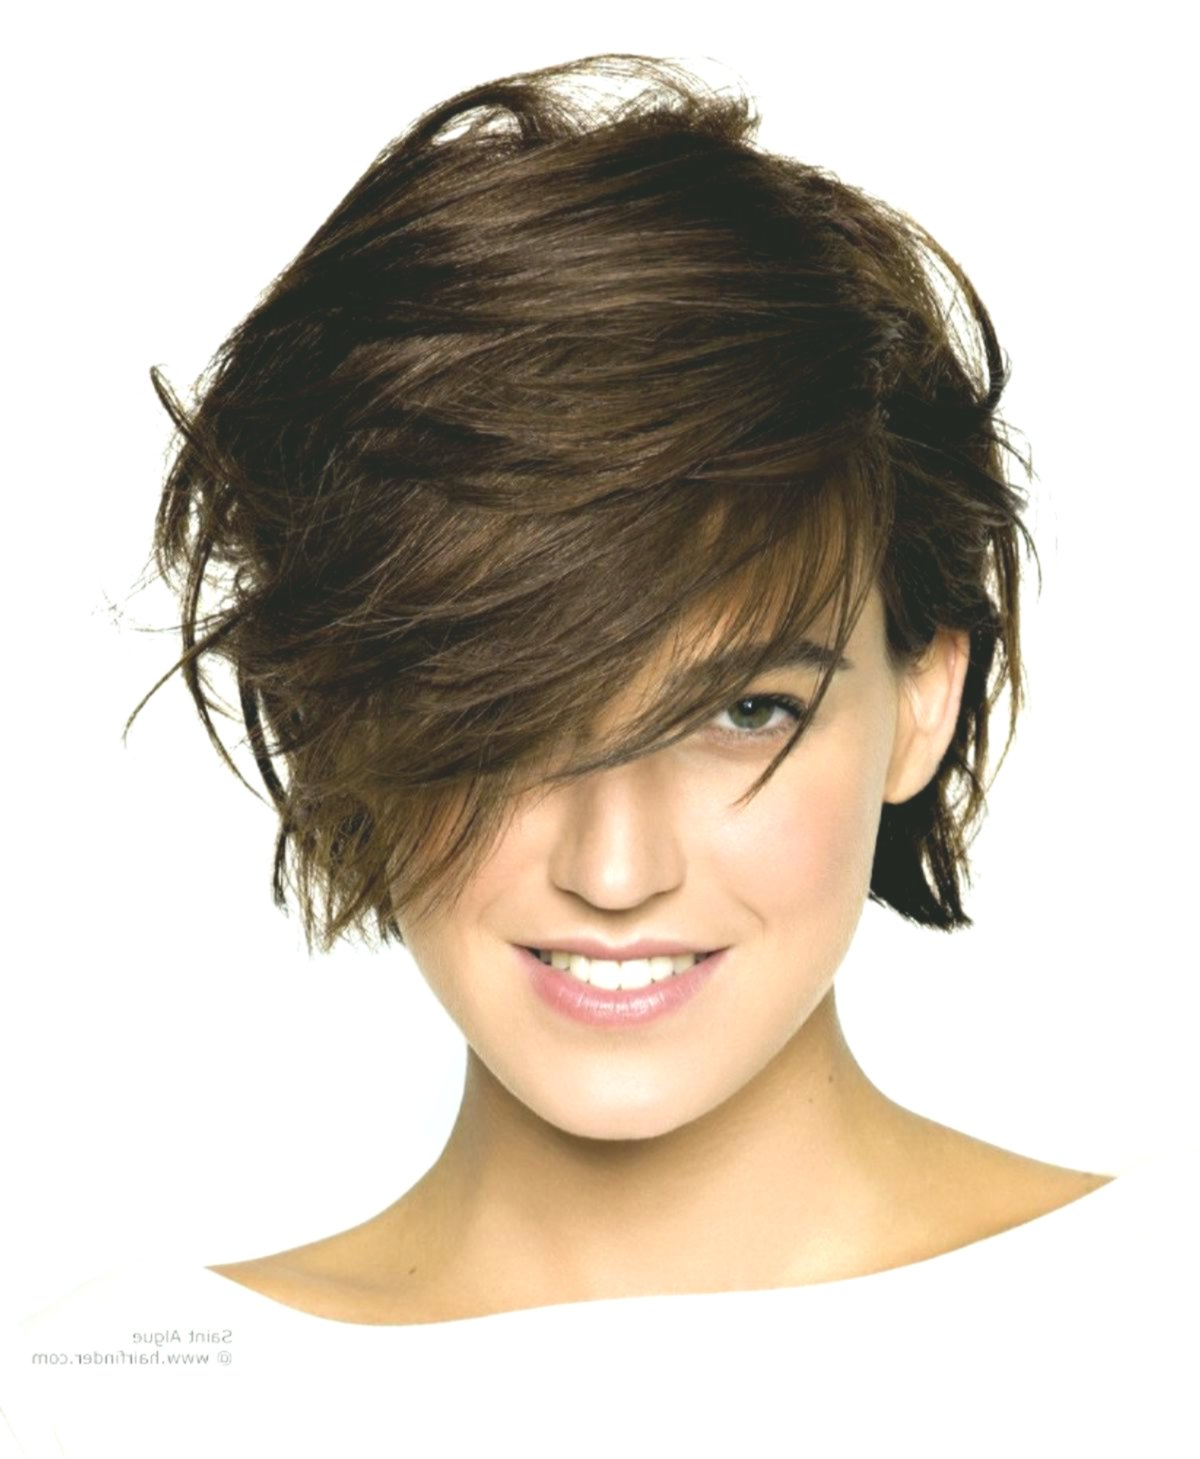 Modern Men's Hairstyle Short Collection-Cute Men Hairstyle Short Image